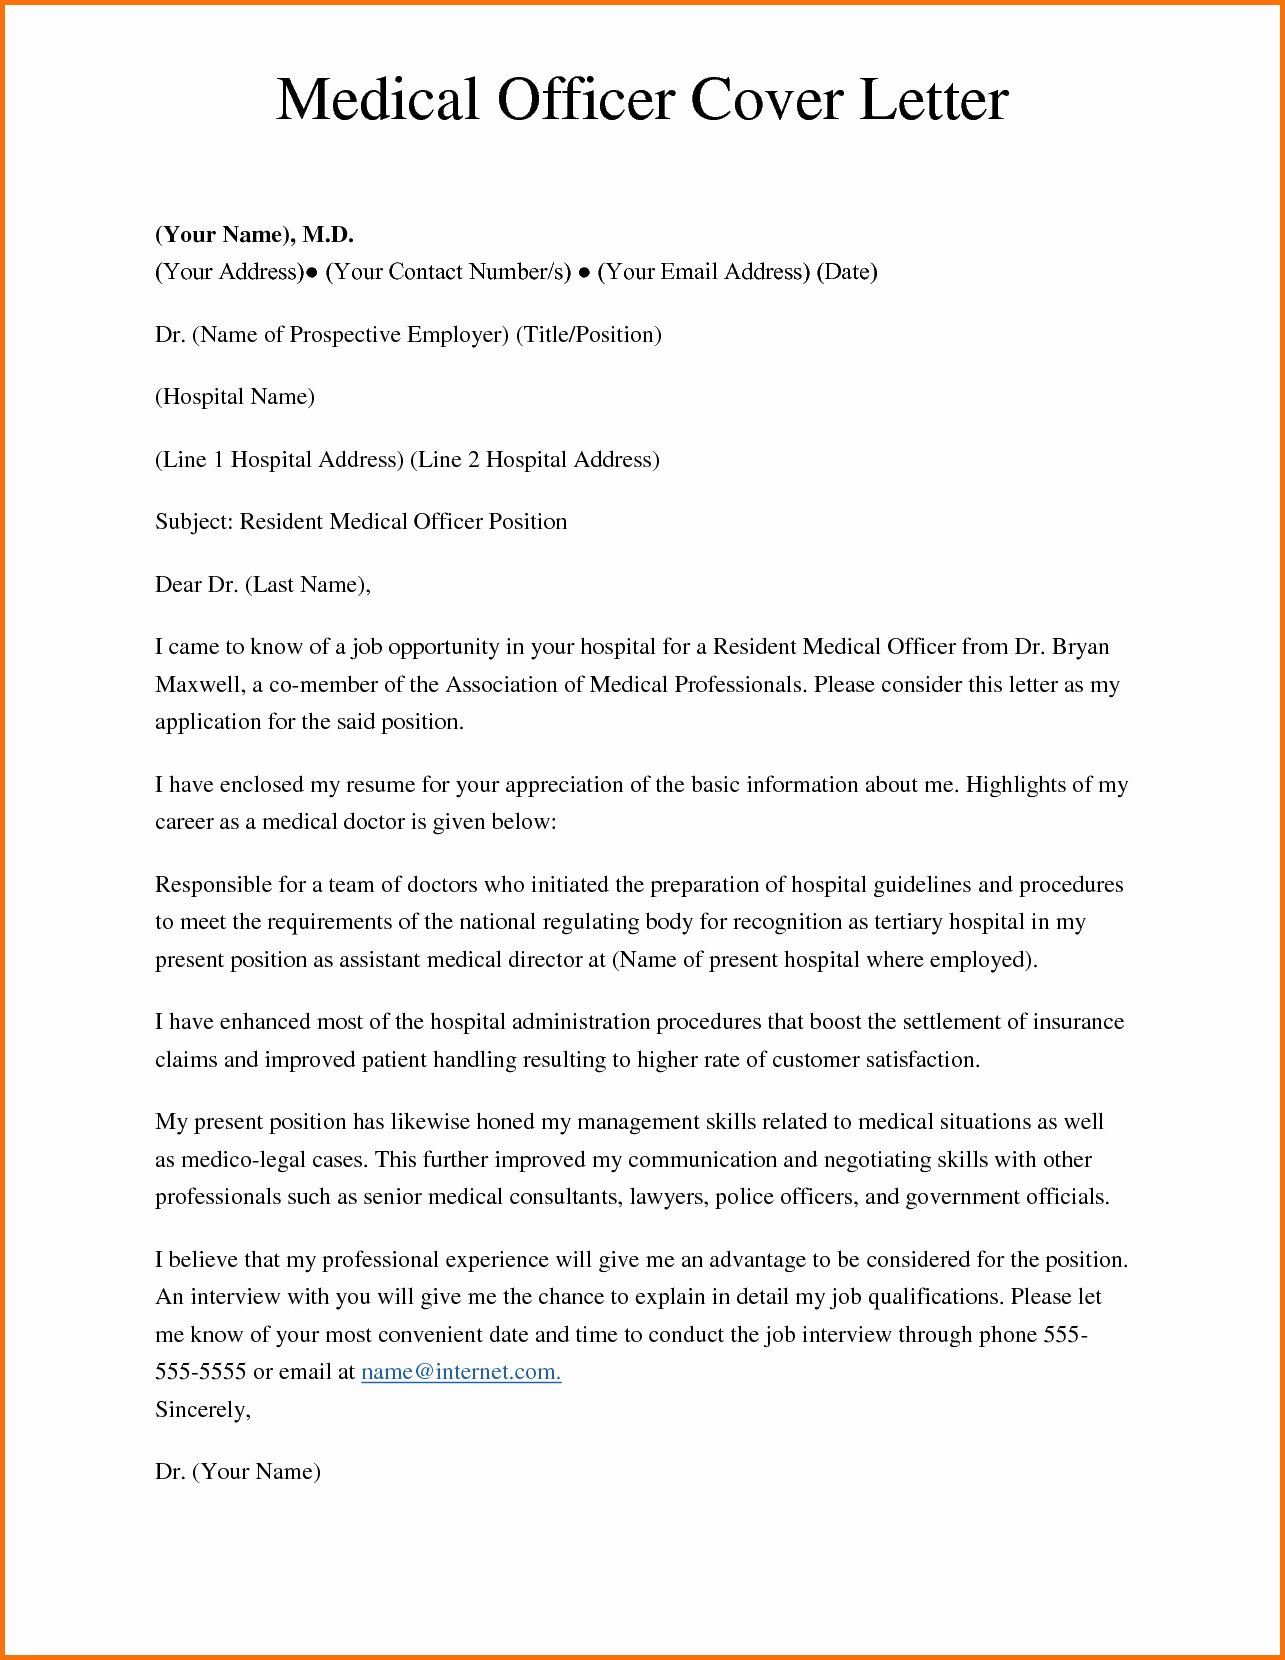 Letter Of Resignation Template Word 2007 Fresh Letter Resignation Template Word 2007 Samples